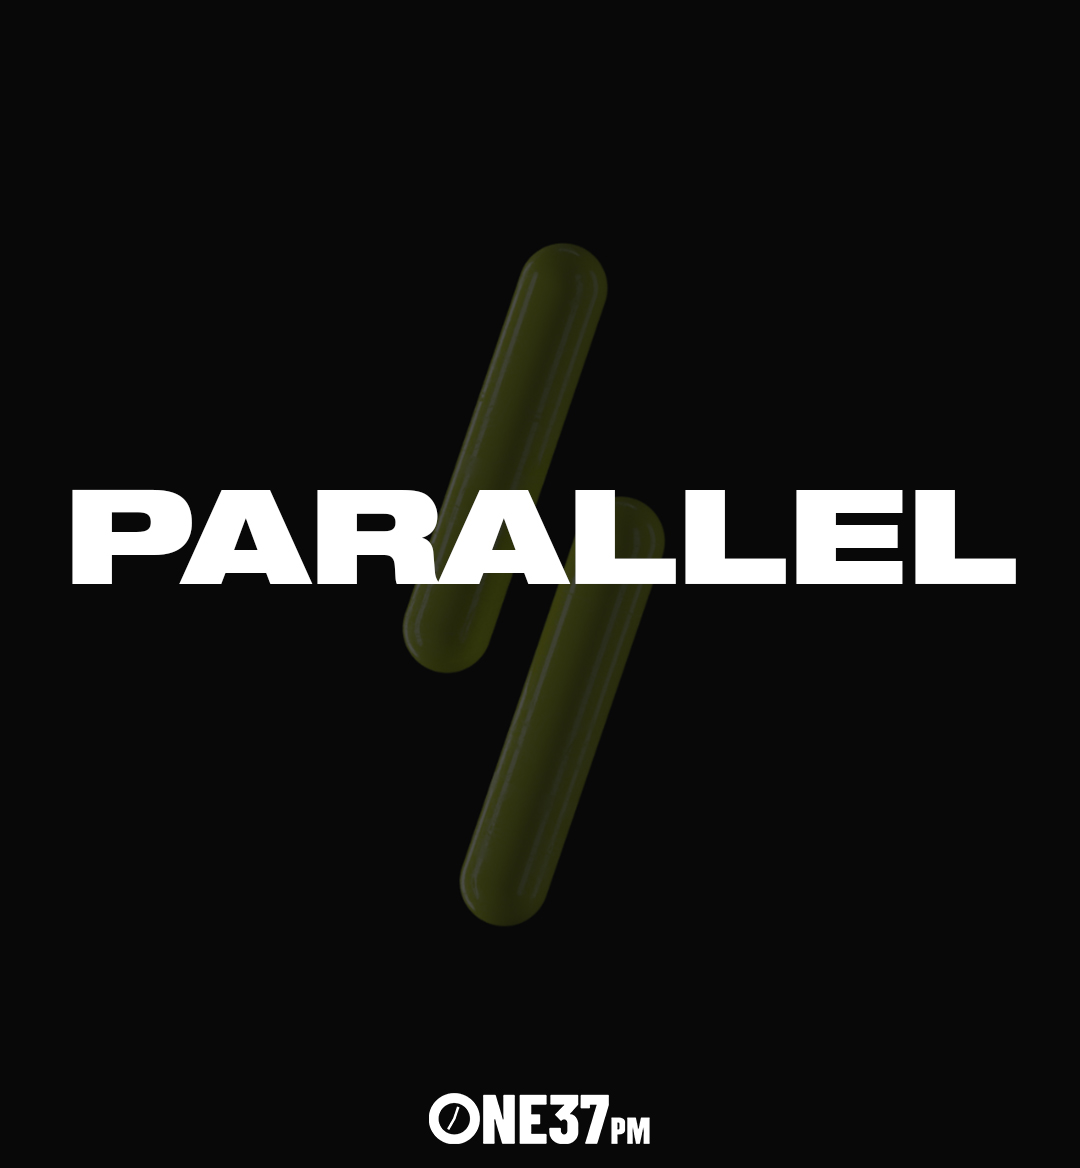 PARALLEL MOBIL